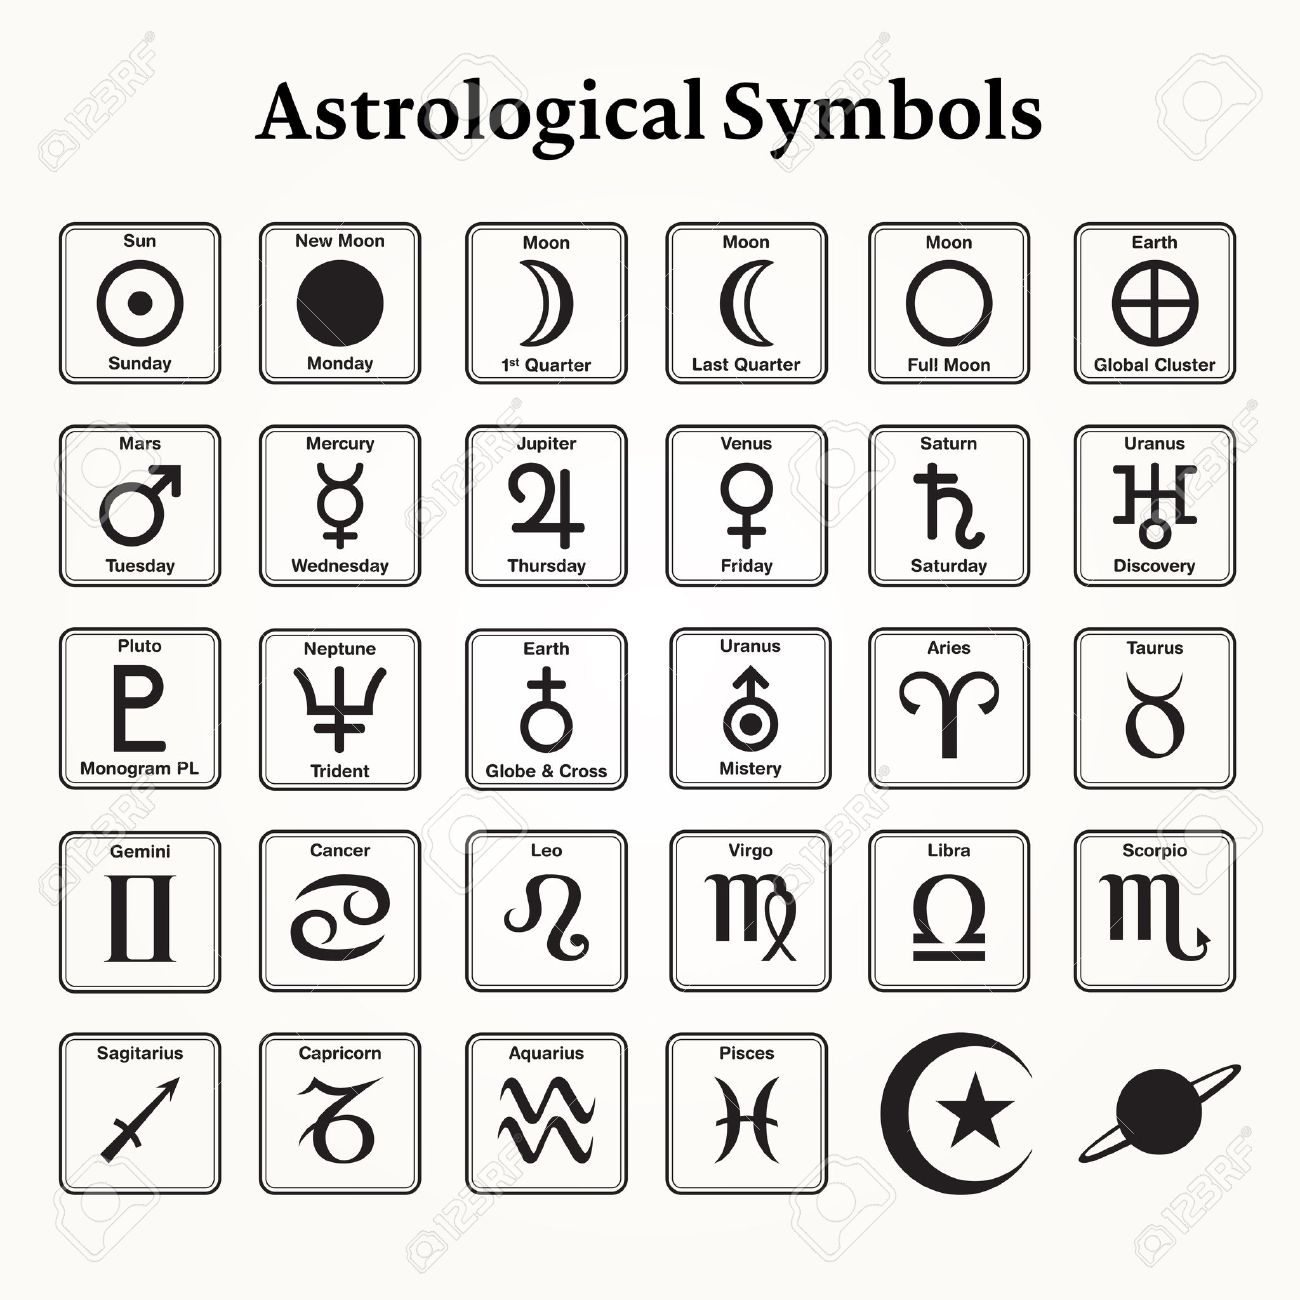 Elements of astrological symbols and signs